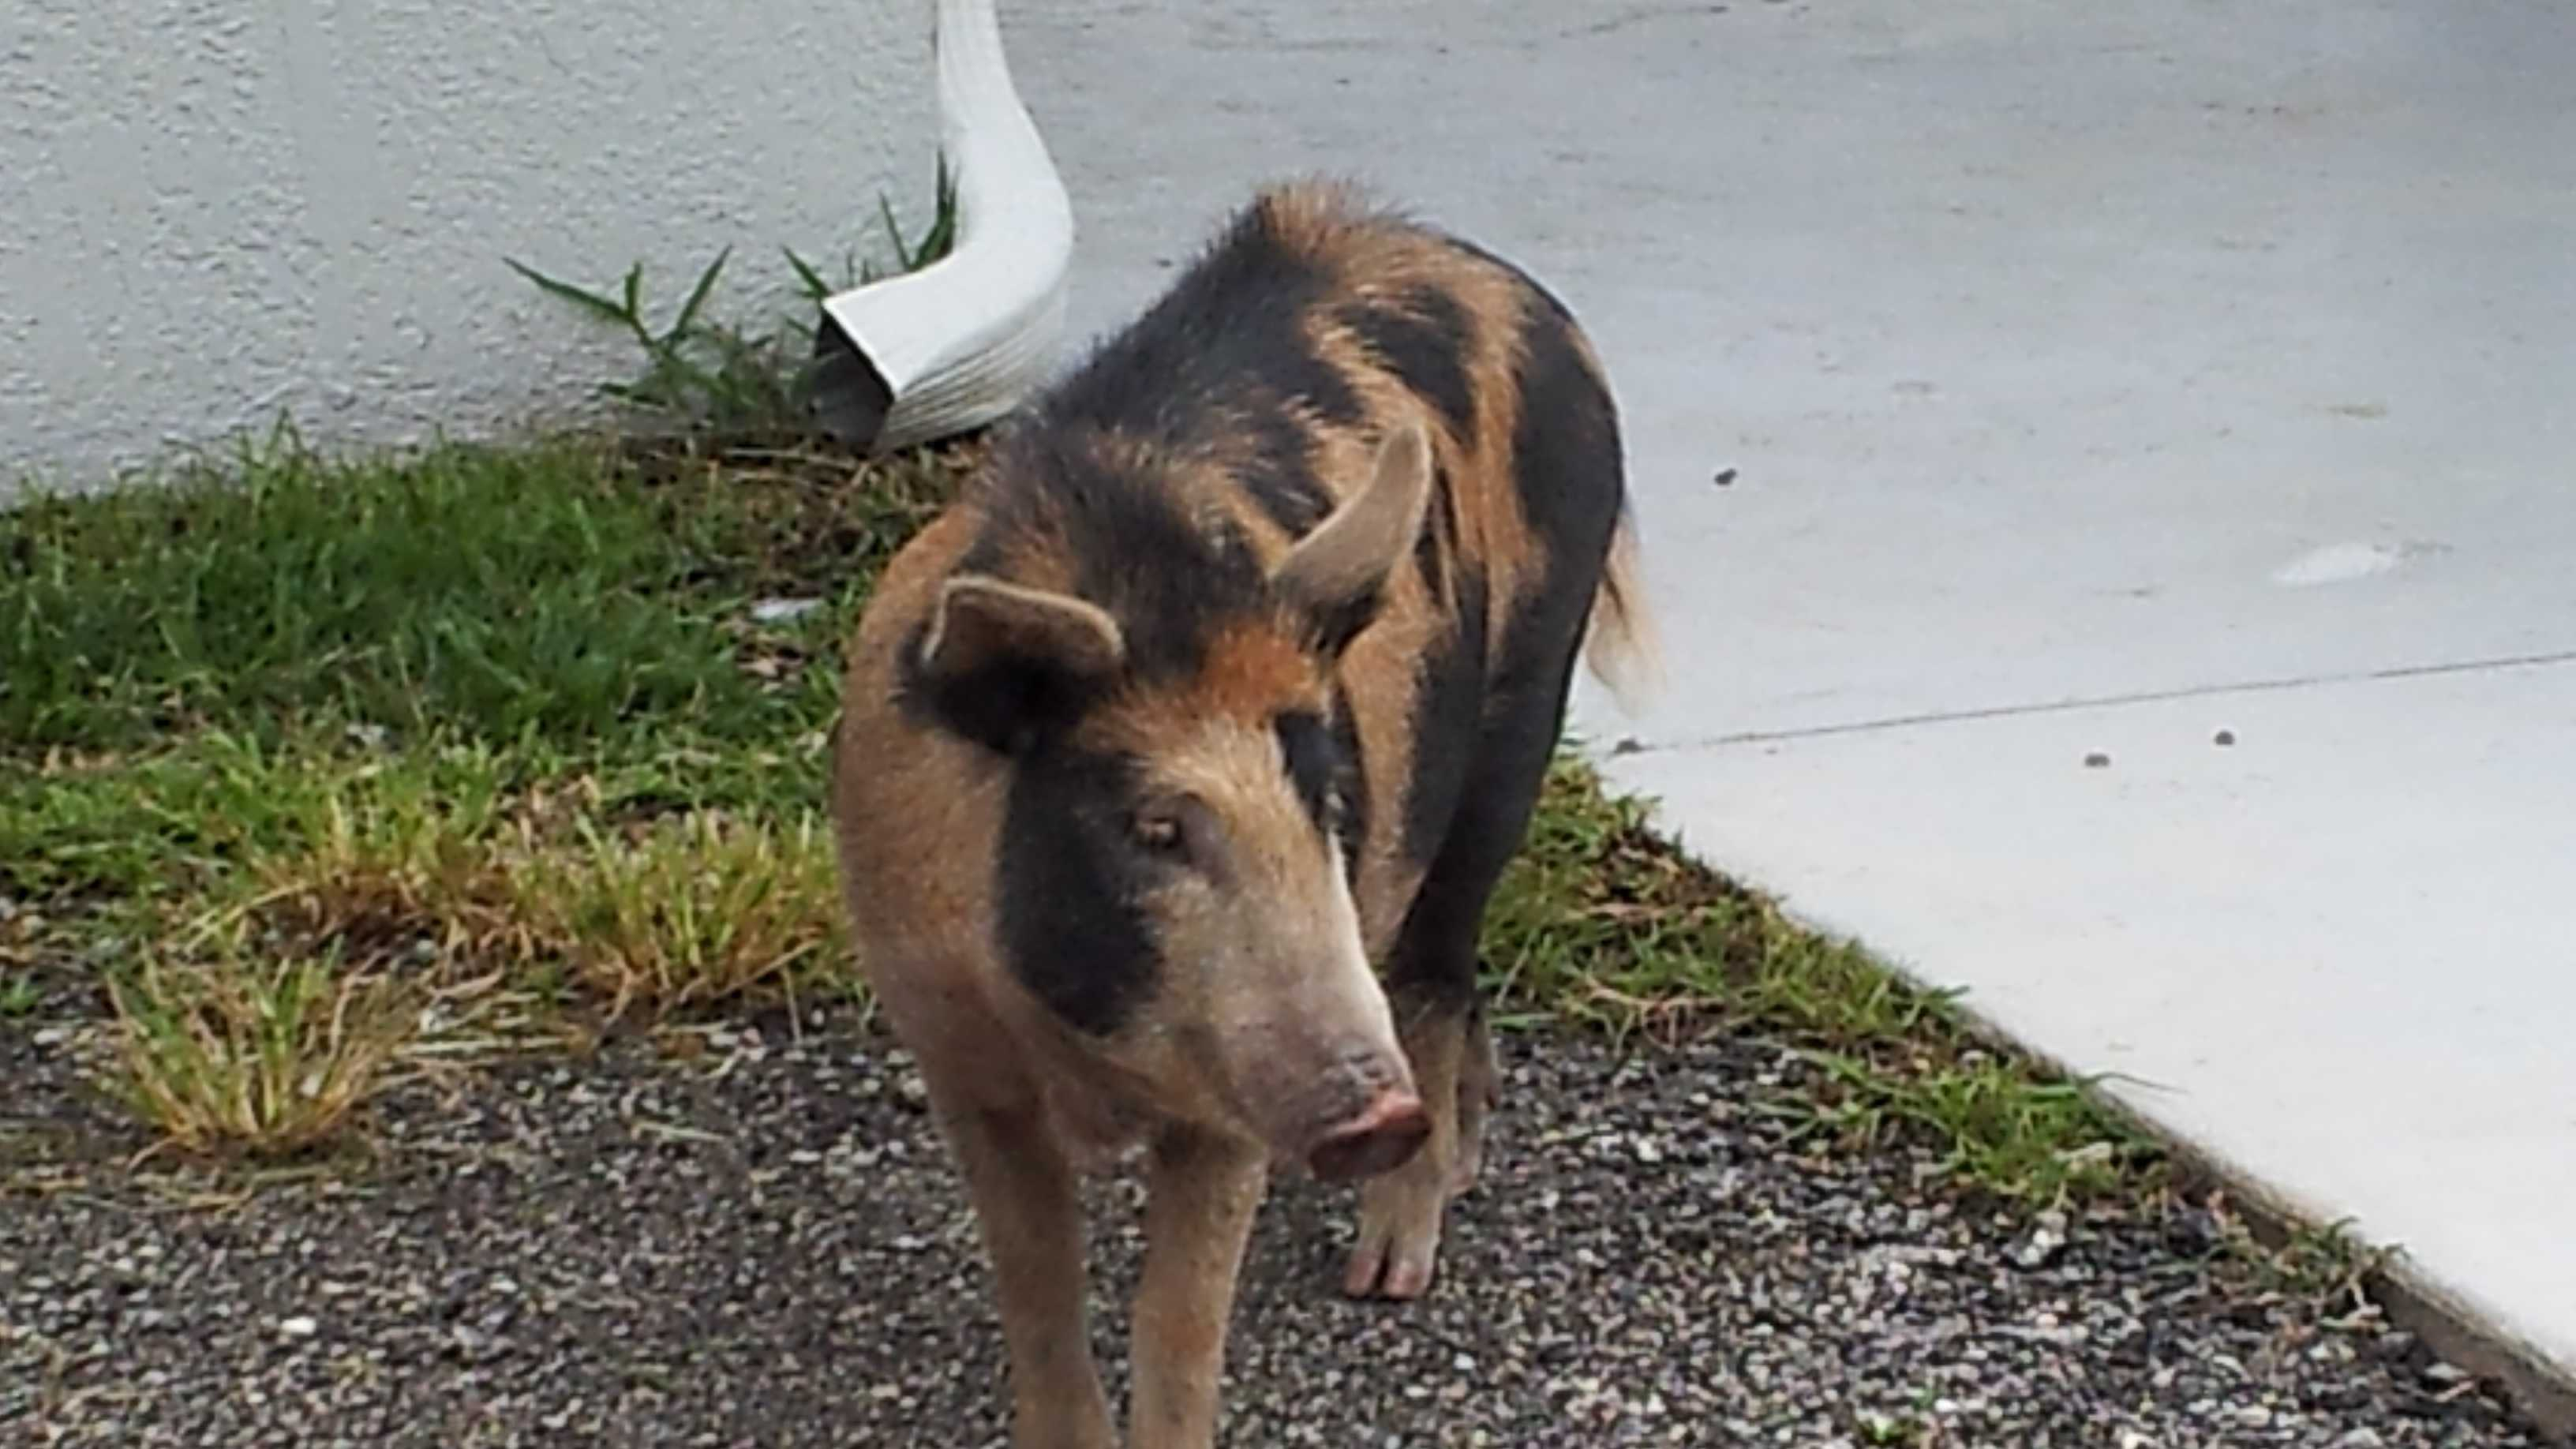 Kenneth Godfrey's pet pig, Pearl, was shot and killed in December 2012.